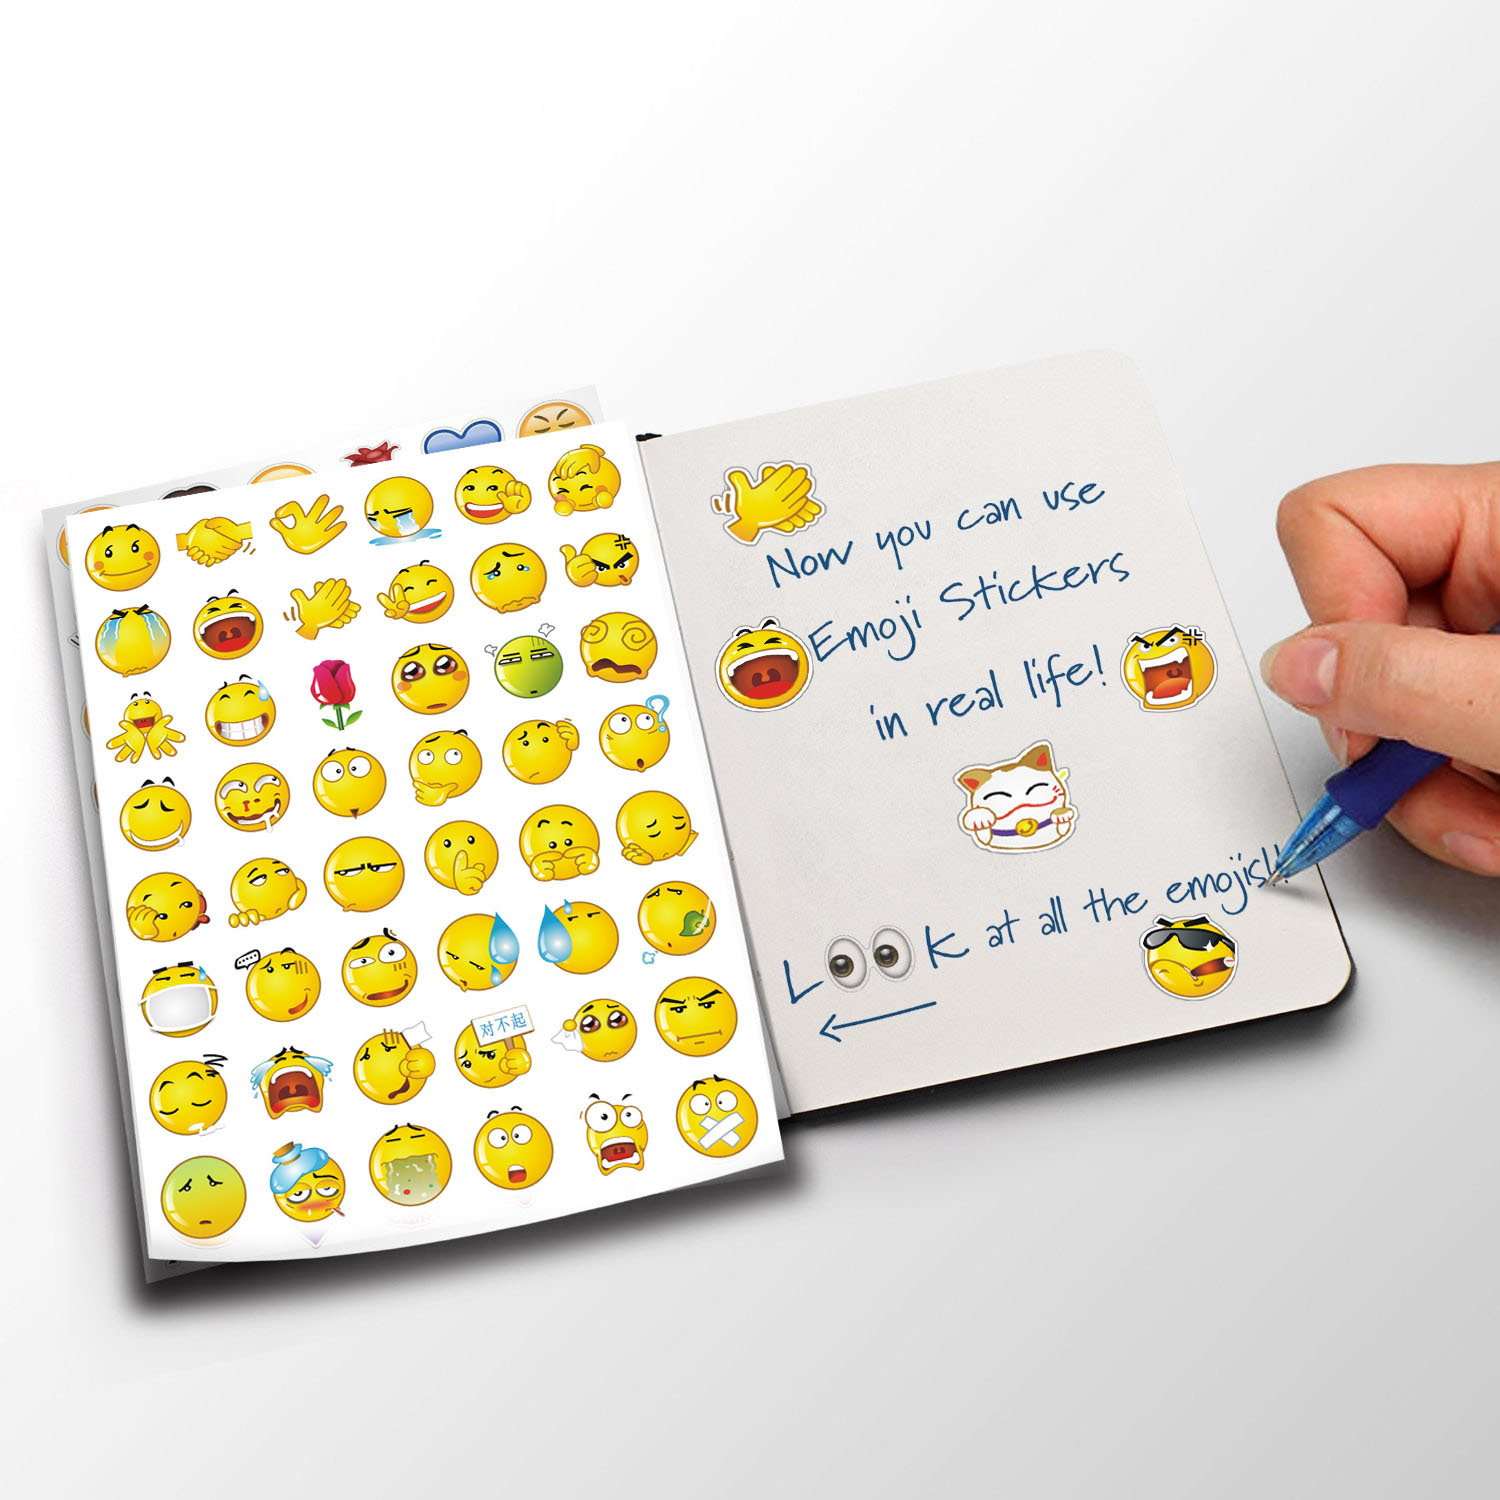 1pc sticker 48 classic emoji wechat aliexpress smile face stickers for notebook albums message twitter vinyl toys send at random in stickers from toys